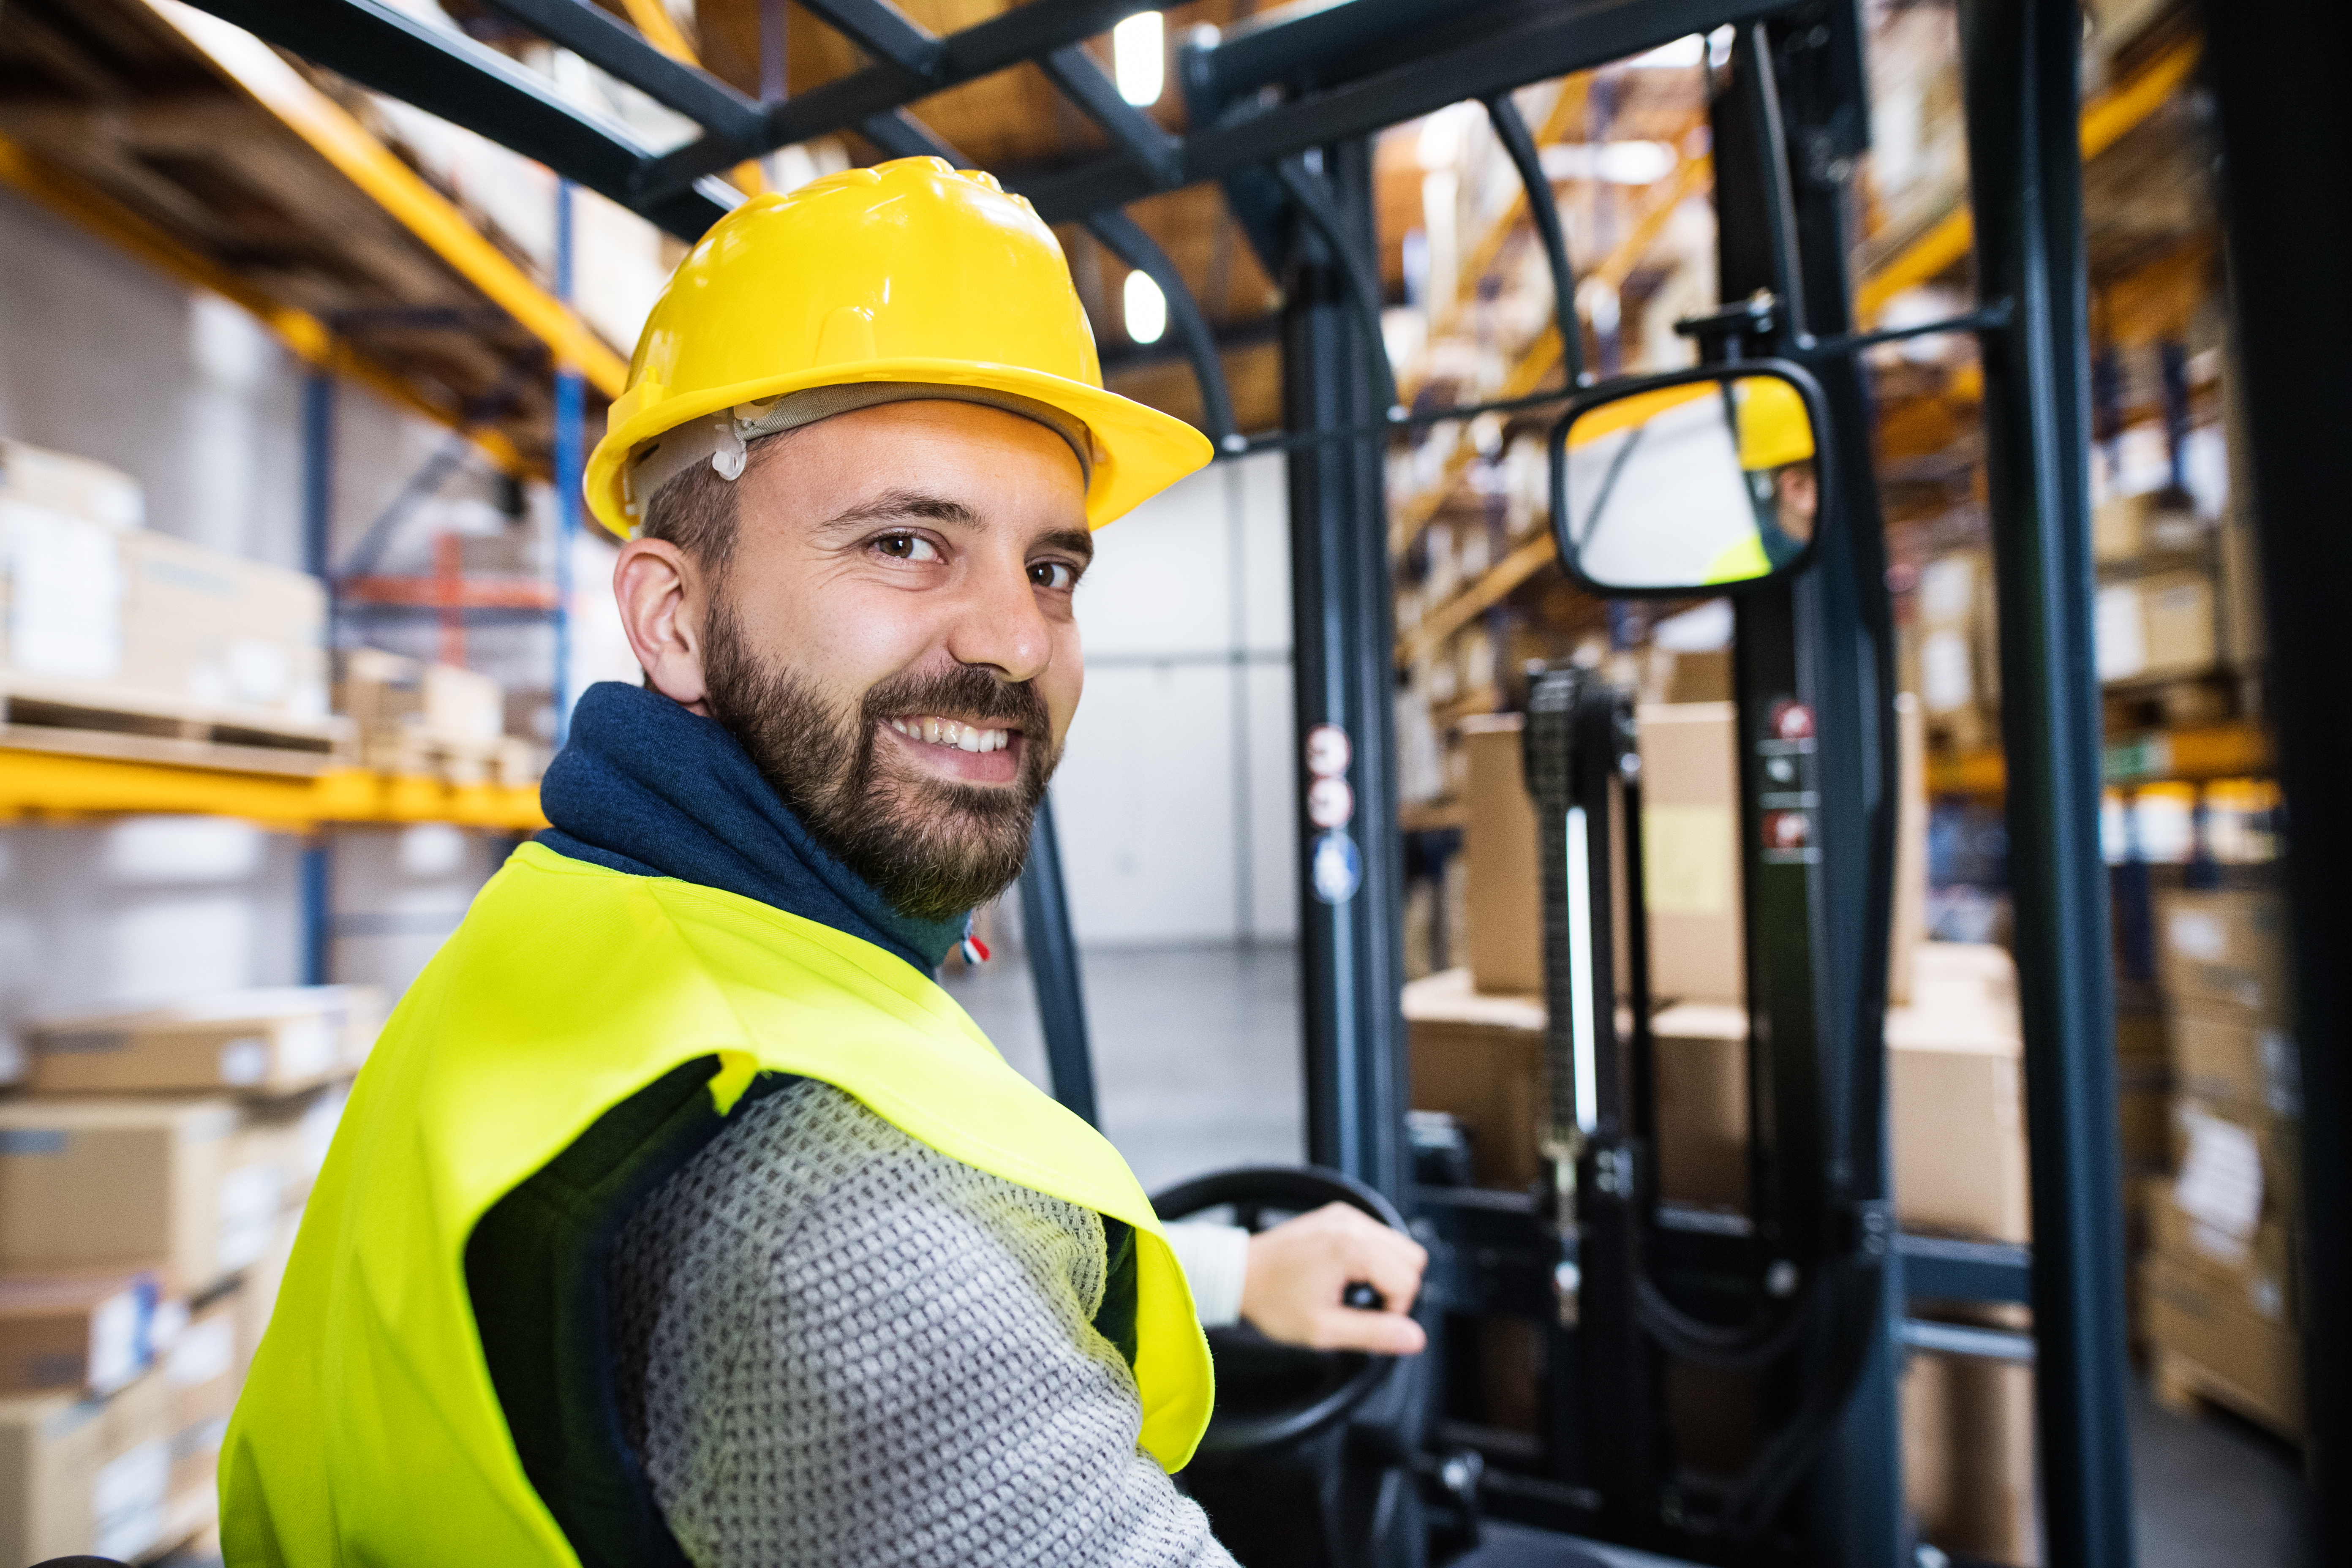 Warehouse worker happy at work on electric truck